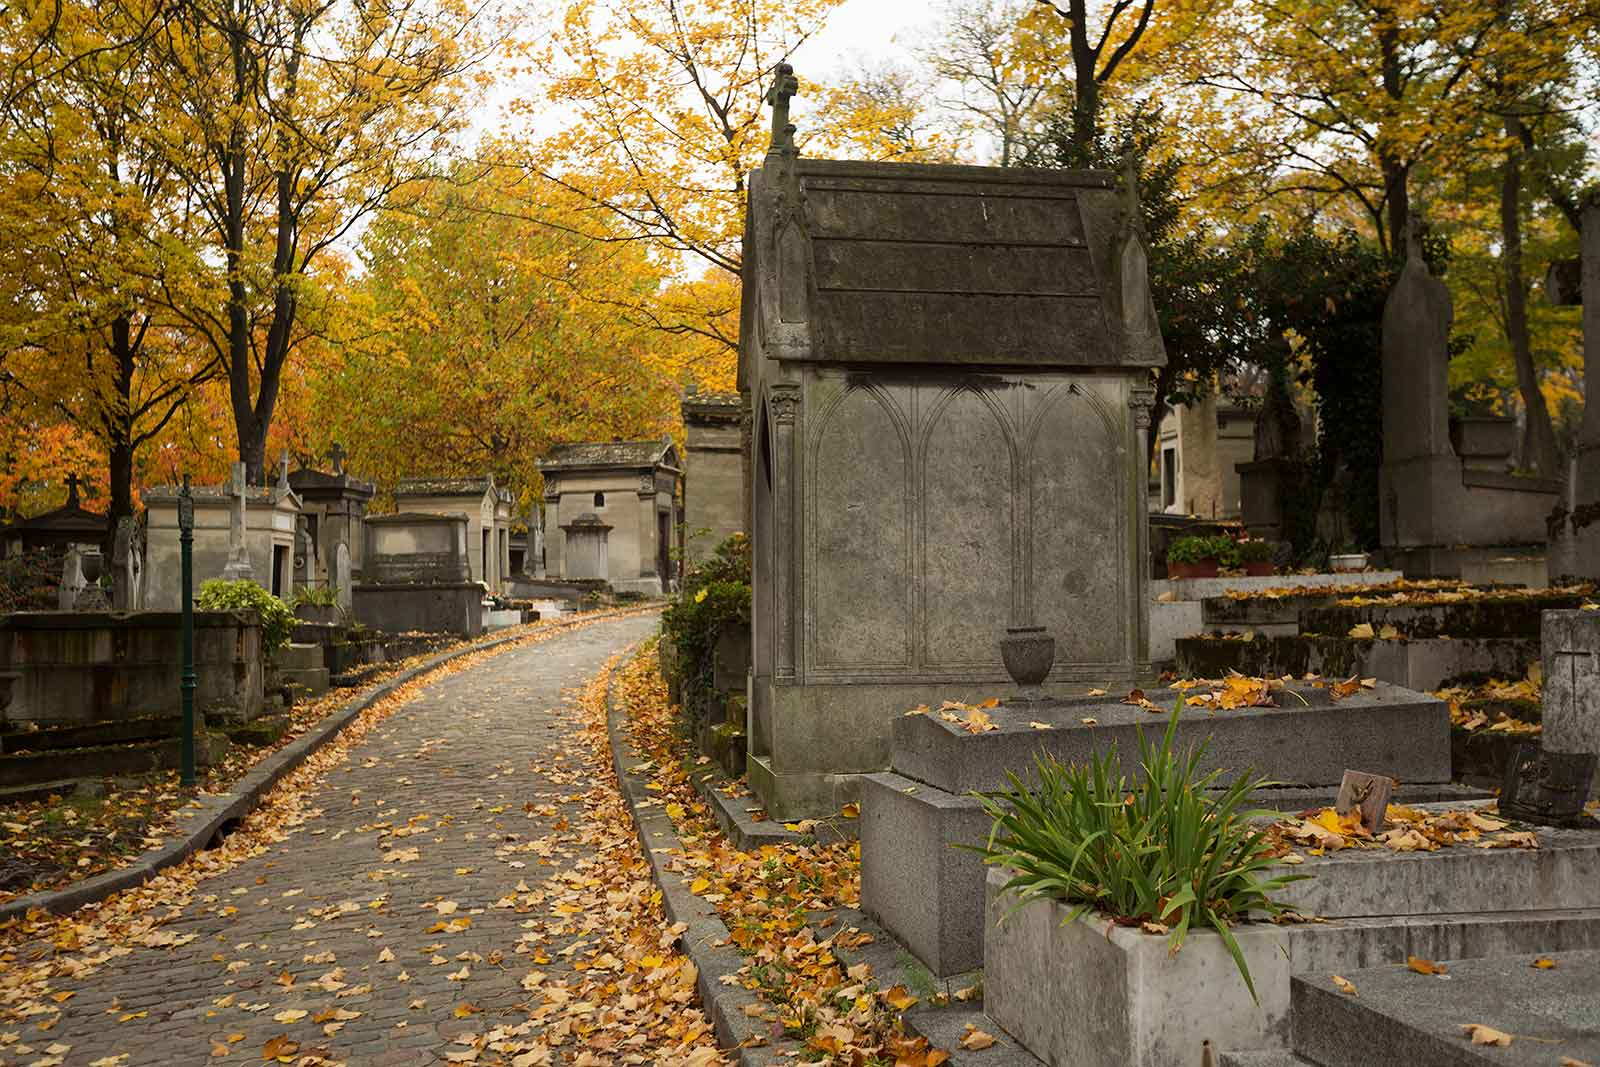 The number of bodies buried at Pere Lachaise cemetery vary widely. Anywhere from 300.000 to 1.000.000 souls are estimated.